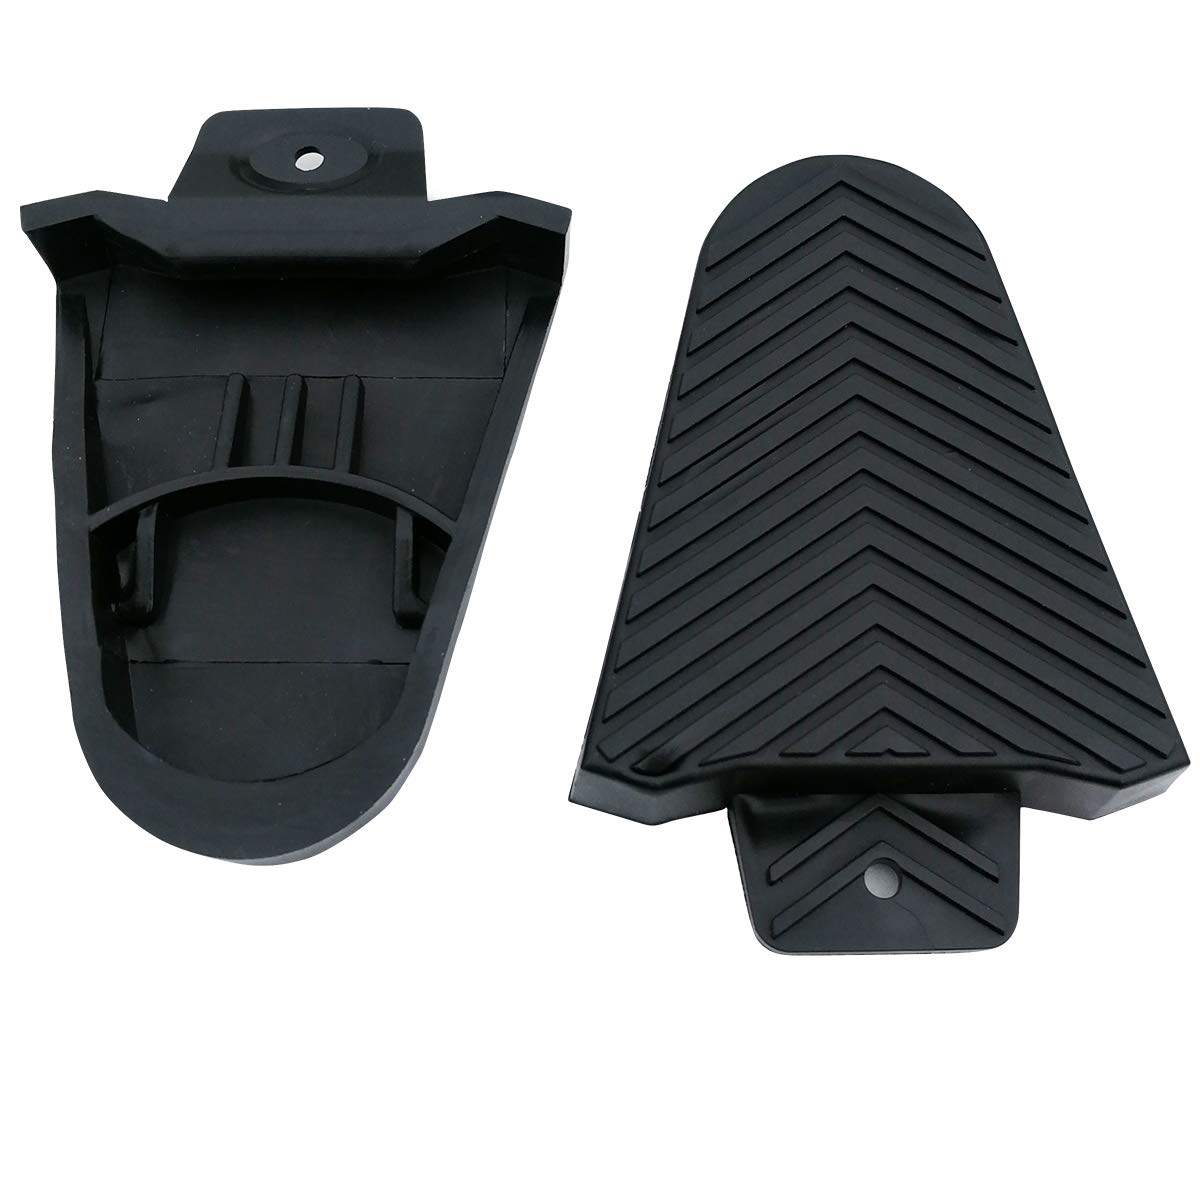 SPORTMORE Bike Bicycle Cleat Covers Compatible with Shimano SPD-SL Pedal Systems - 1 Pair by SPORTMORE